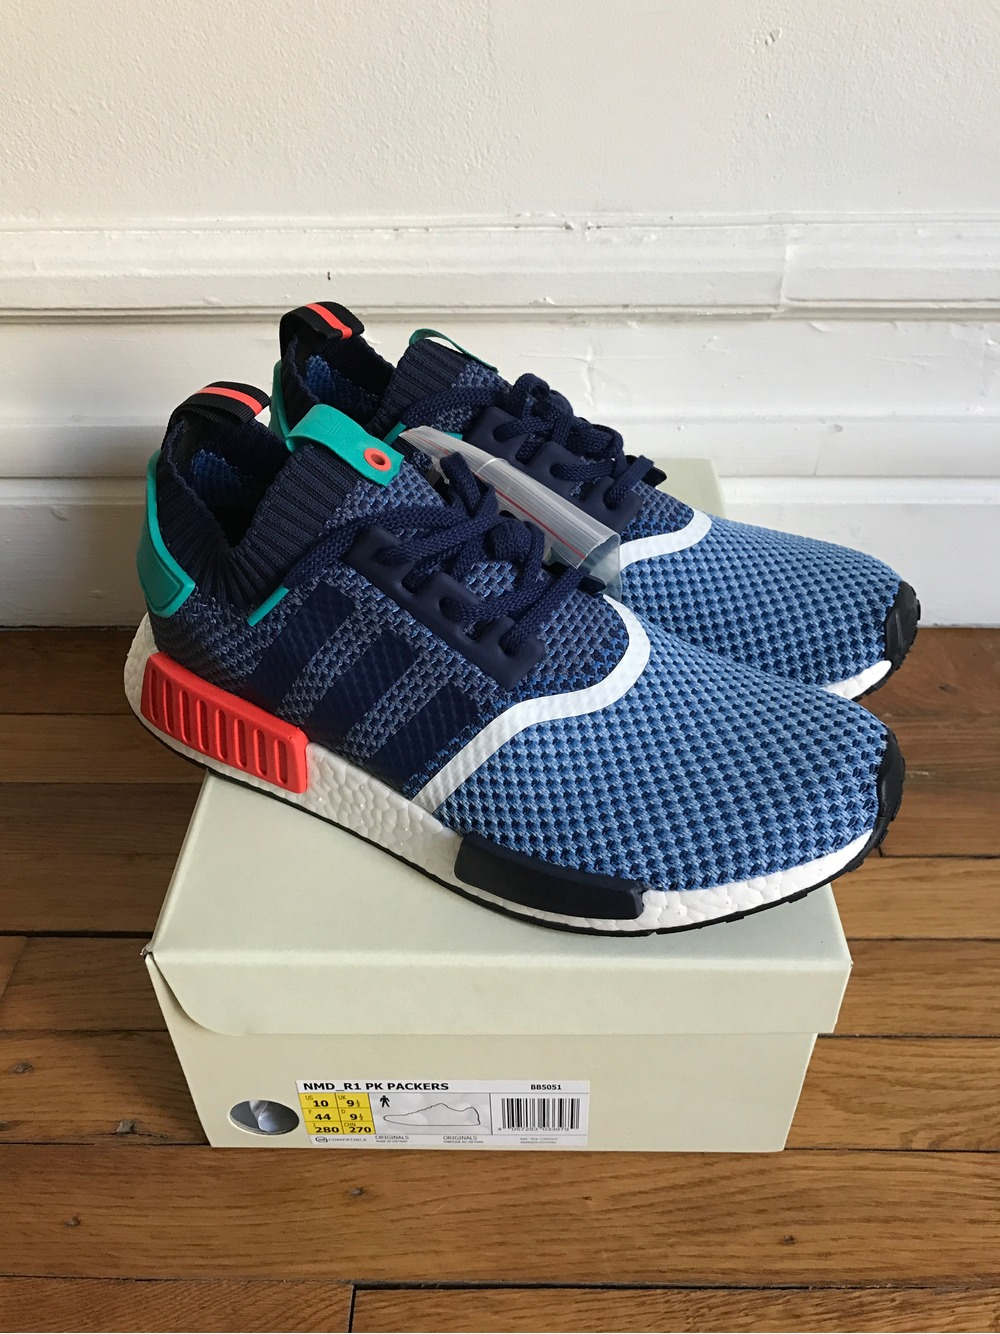 Recent pick up Nmd R1